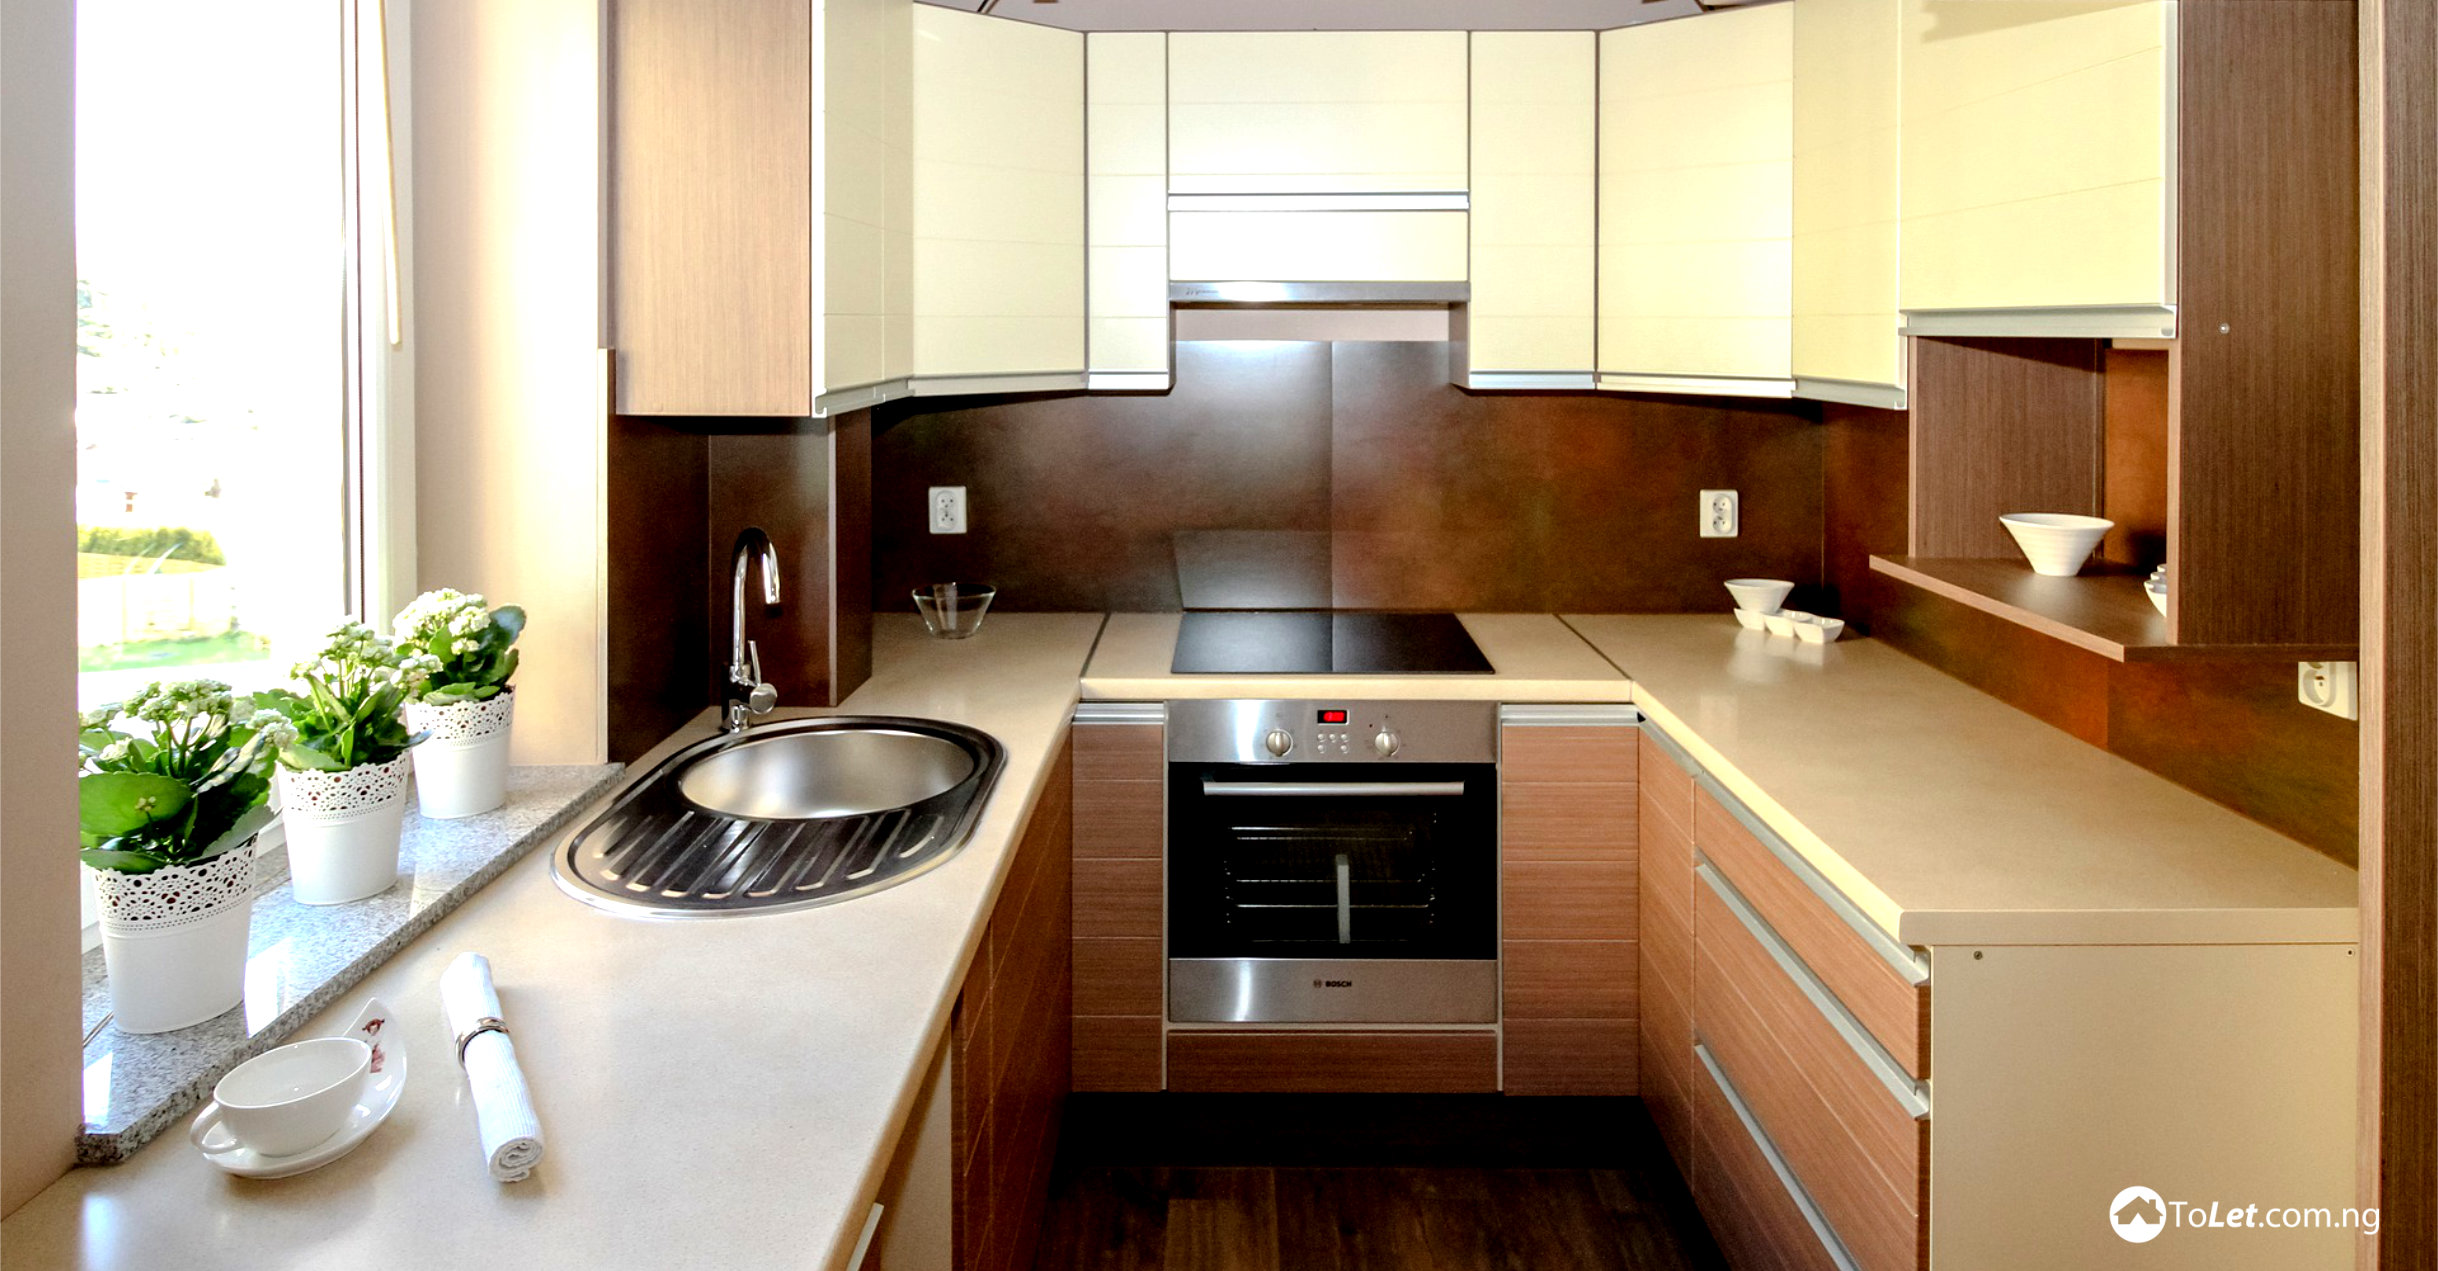 5 basic plans for modern kitchen designs tolet insider for Kitchen designs in nigeria